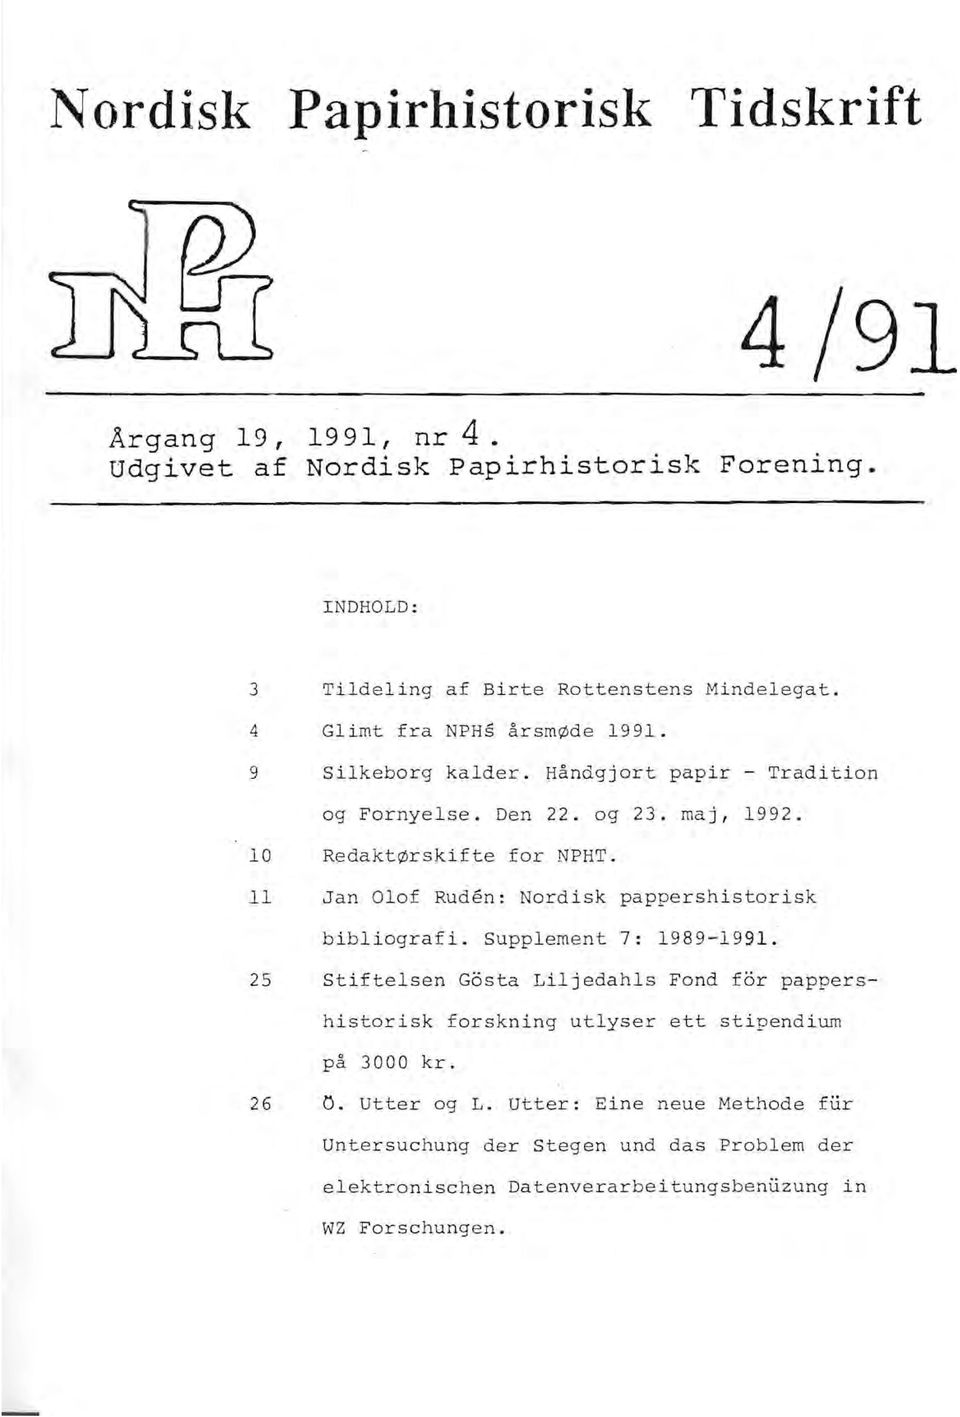 11 Jan Olof Ruden: Nordisk pappershistorisk bibliografi. Supplement 7: 1989-1991.